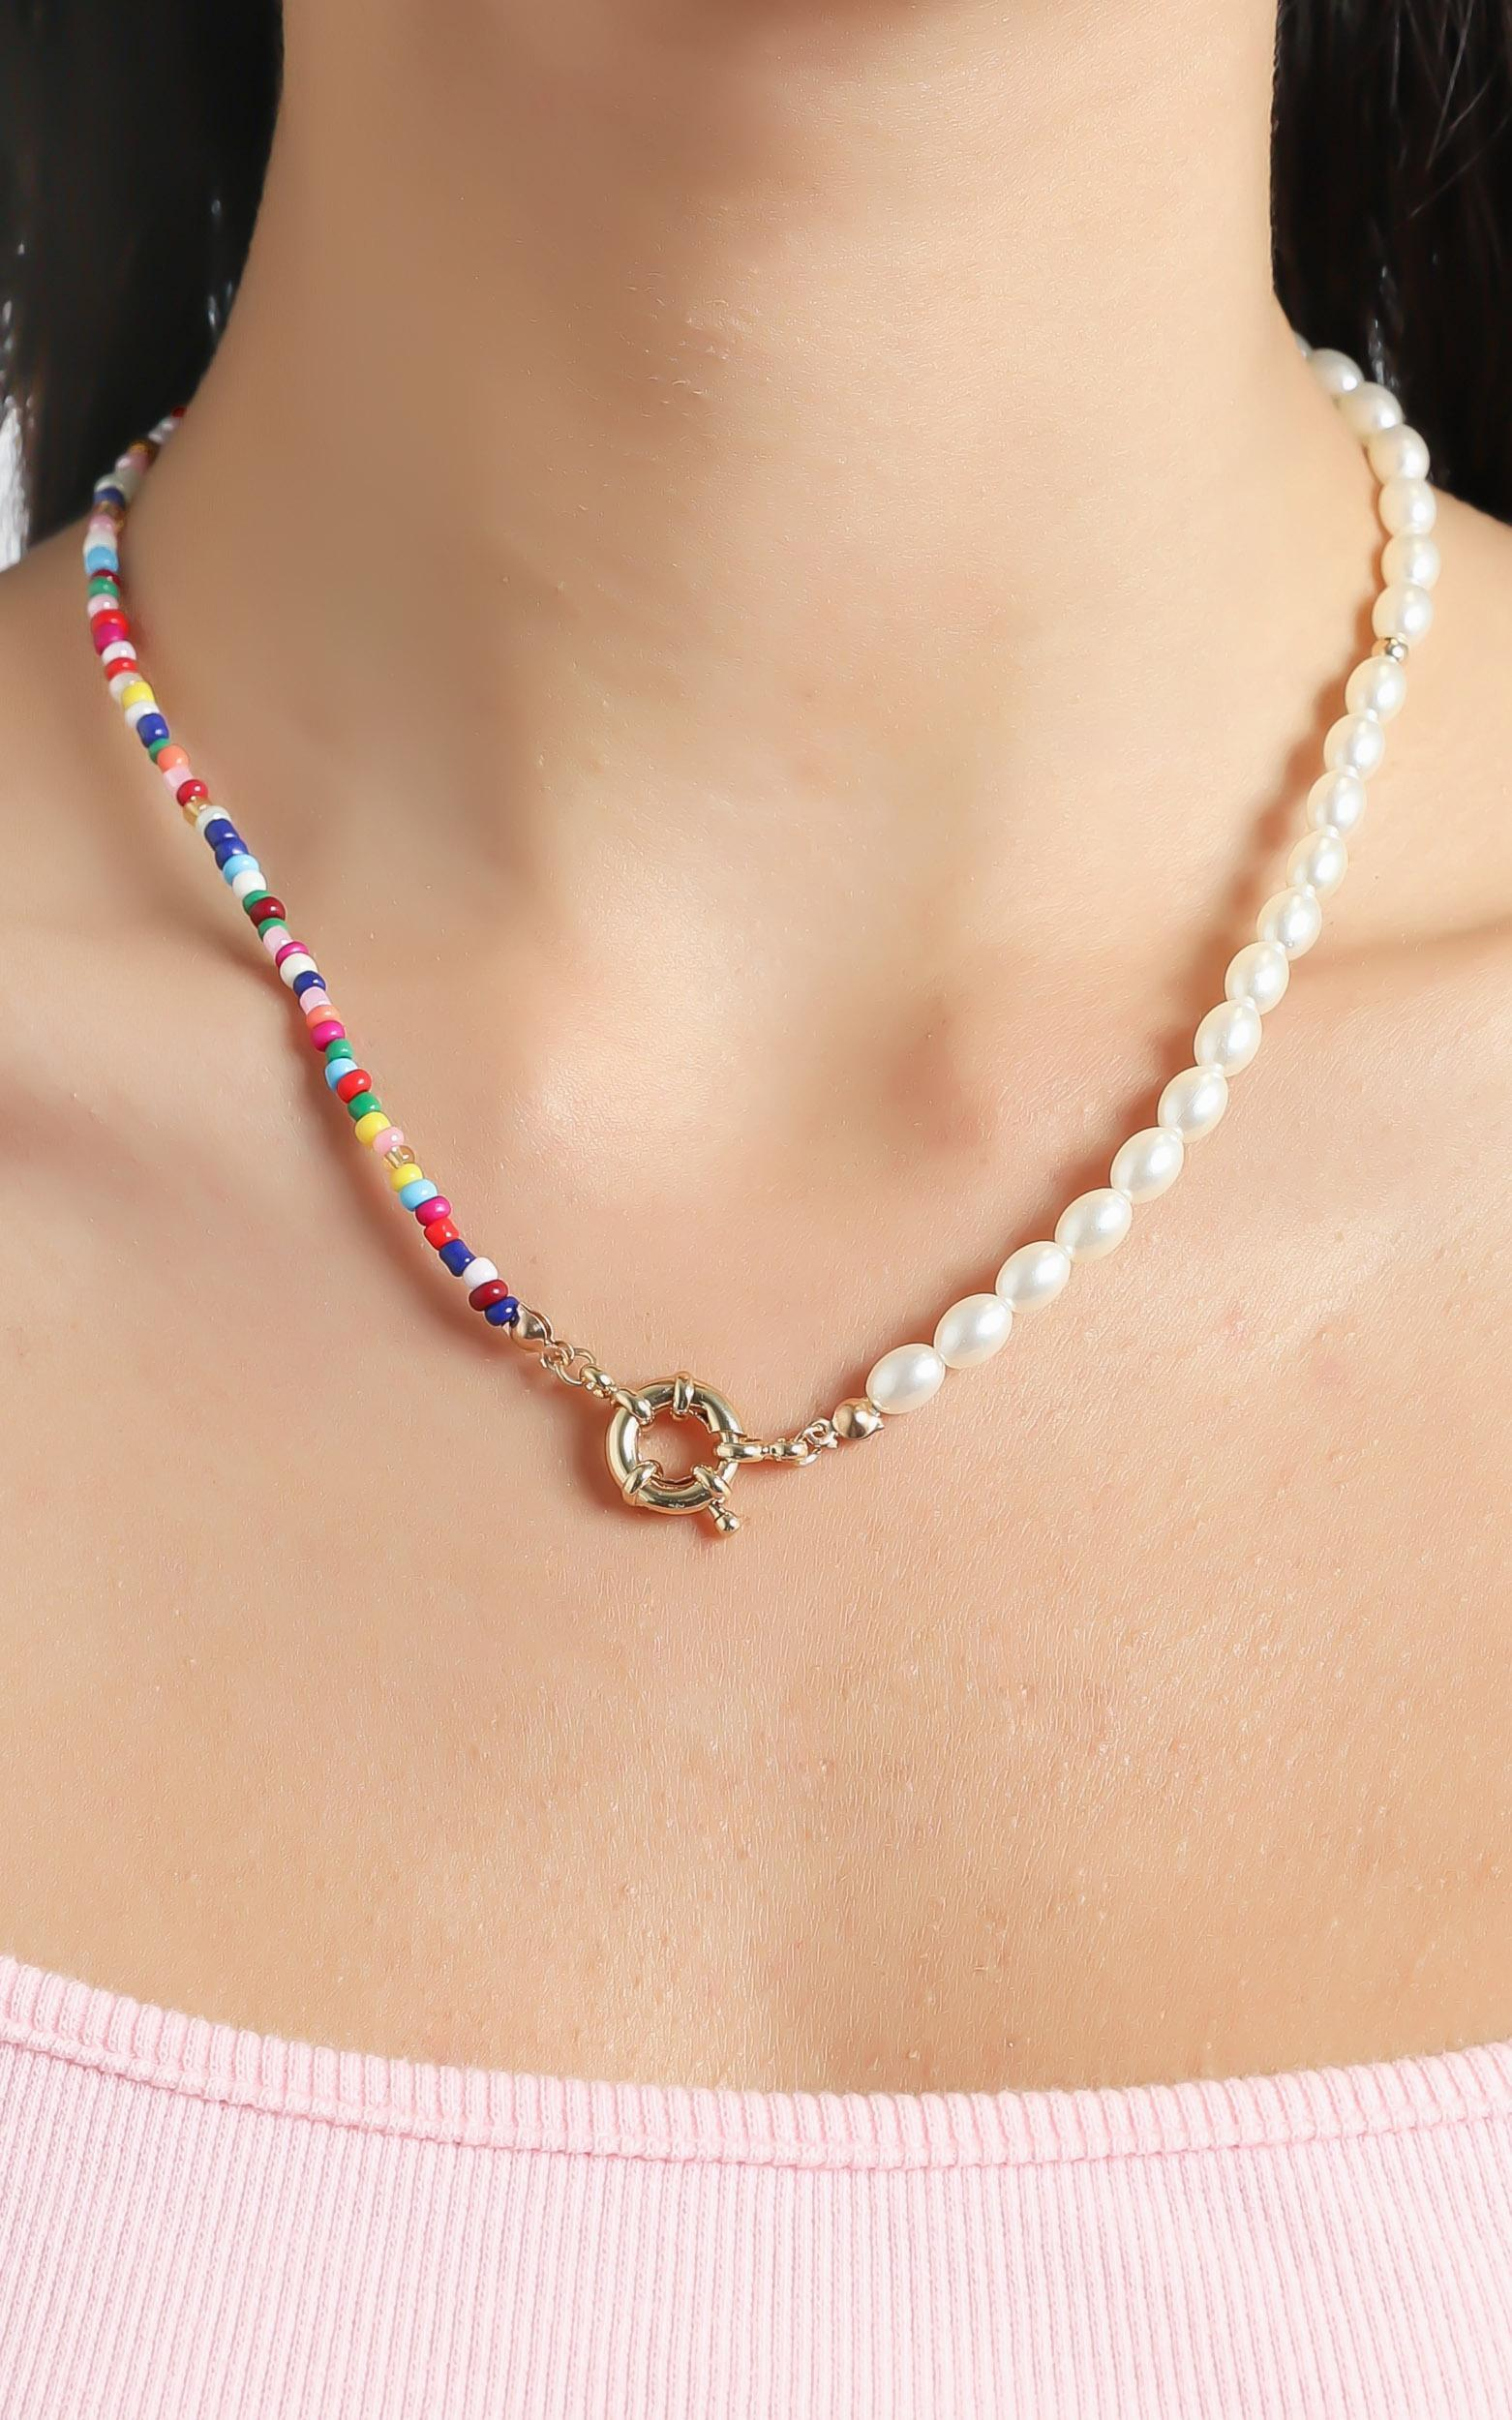 Beaded Necklace with Pearls in Multi, , hi-res image number null